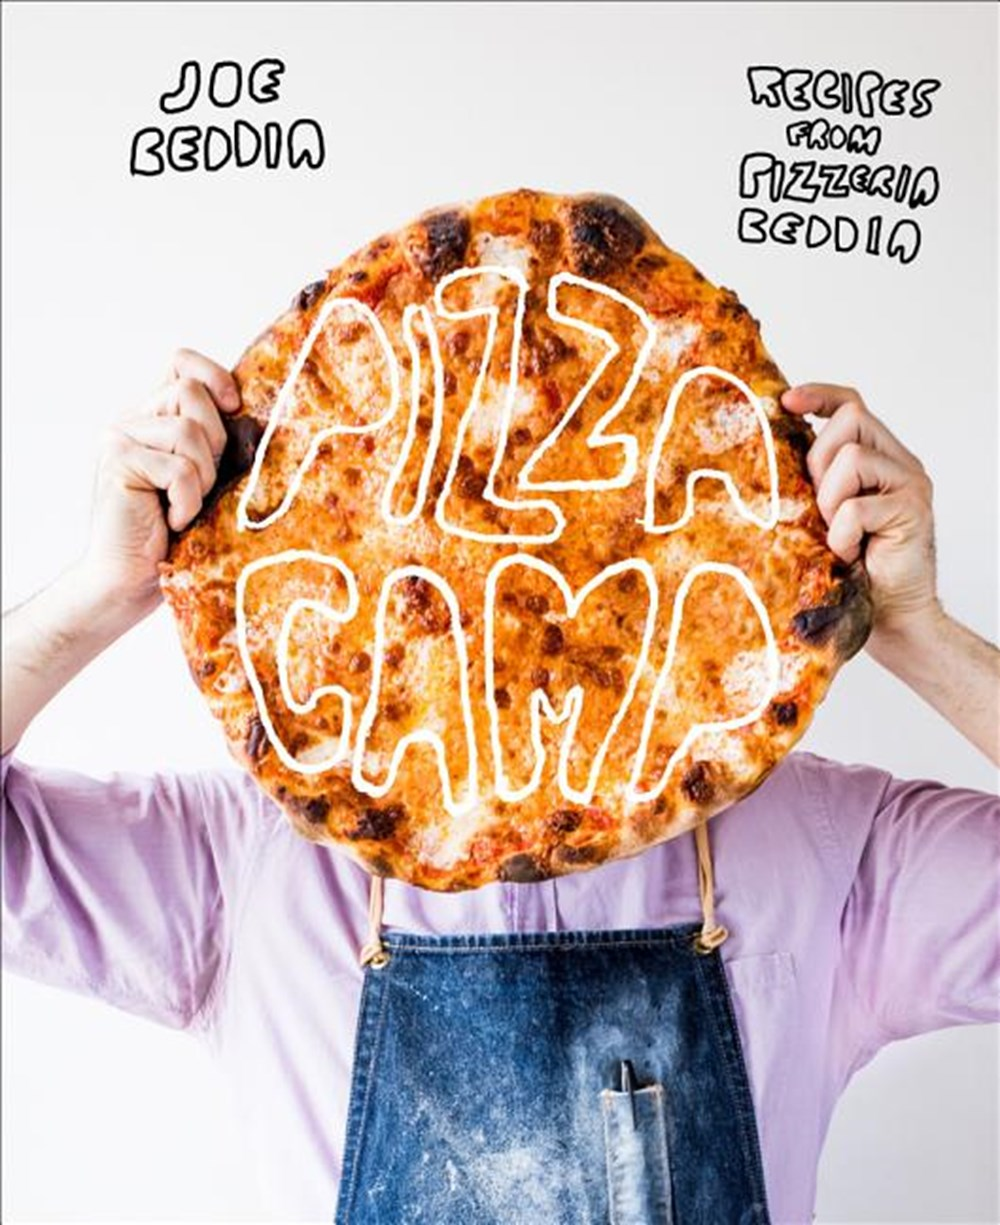 Pizza Camp Recipes from Pizzeria Beddia